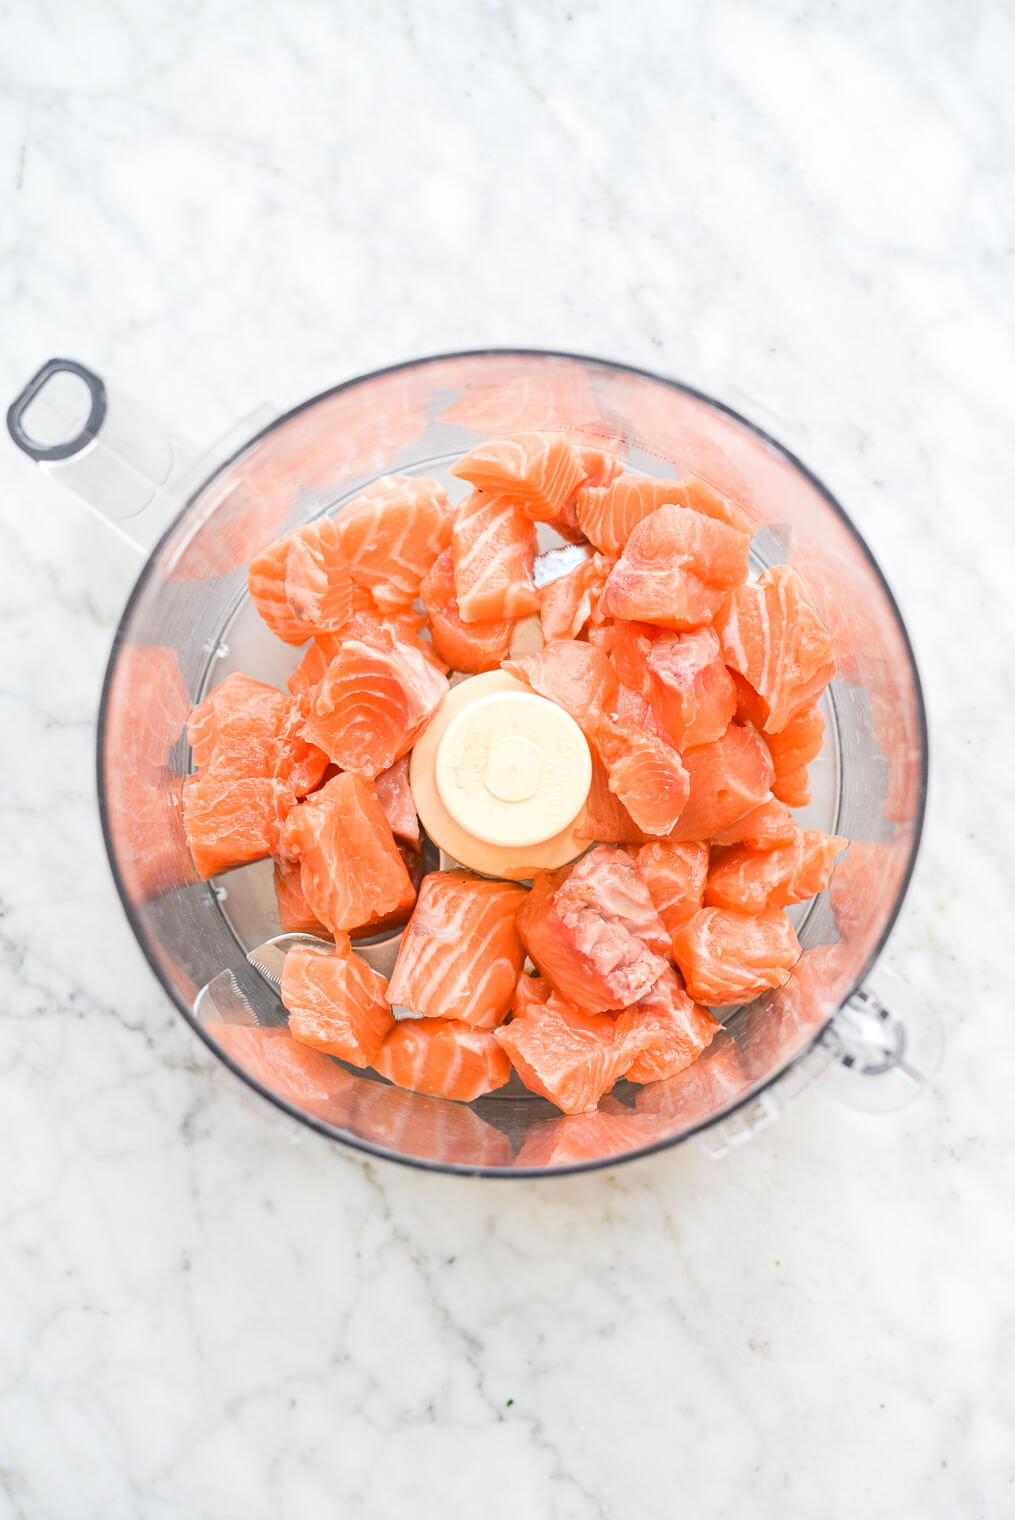 cubed salmon in a food processor